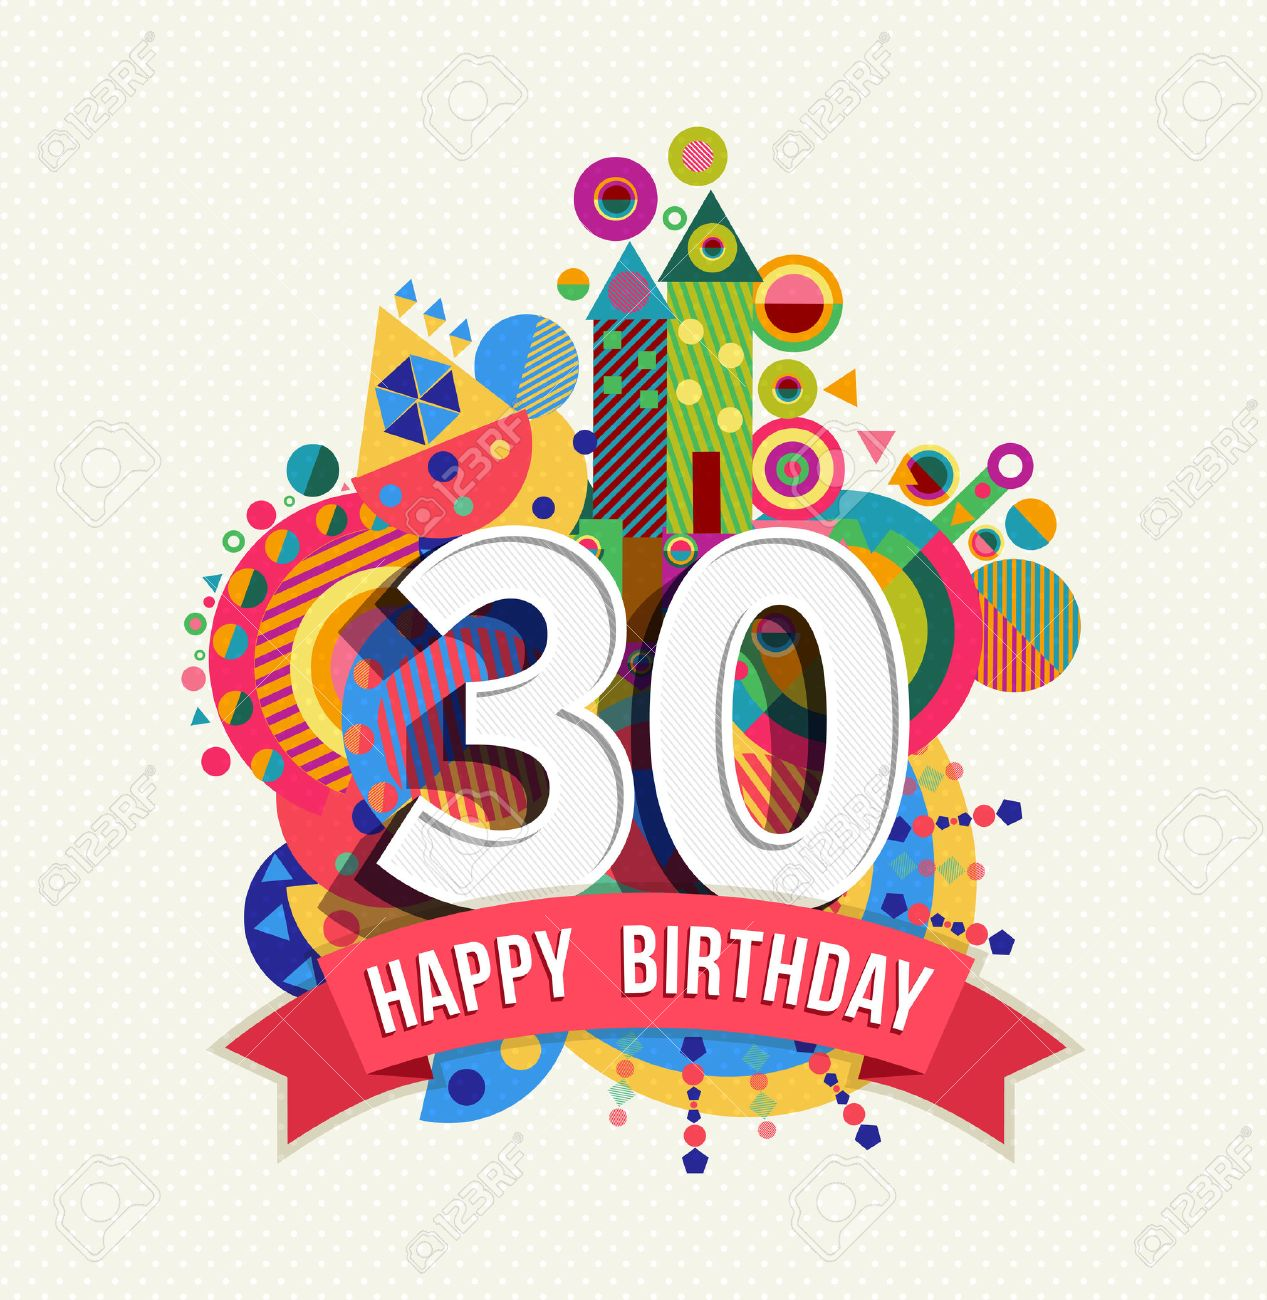 Happy Birthday thirty 30 year fun celebration greeting card with number, text label and colorful geometry design. EPS10 vector. - 50199046